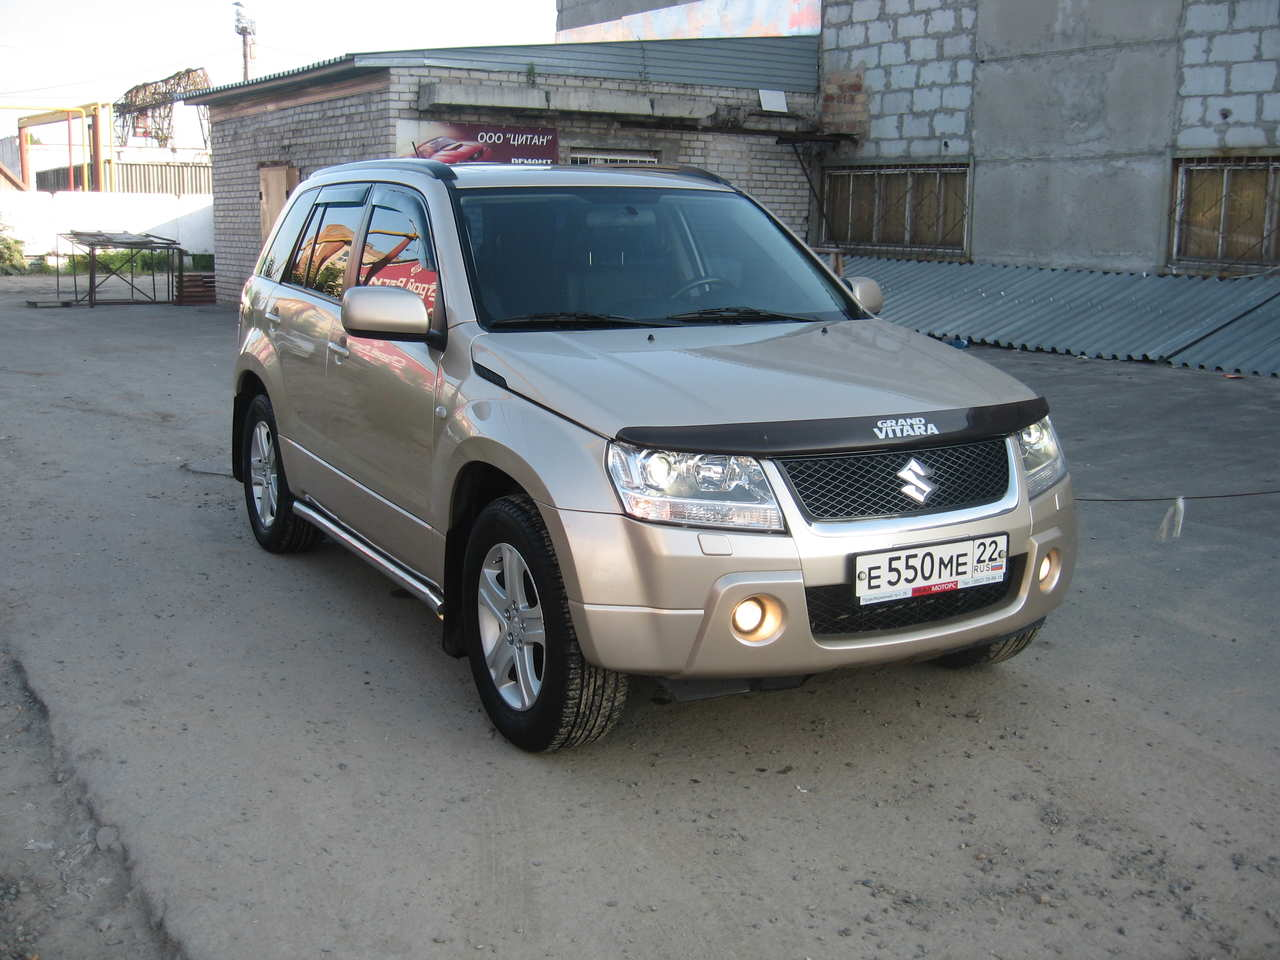 2006 suzuki grand vitara pictures 2000cc gasoline automatic for sale. Black Bedroom Furniture Sets. Home Design Ideas